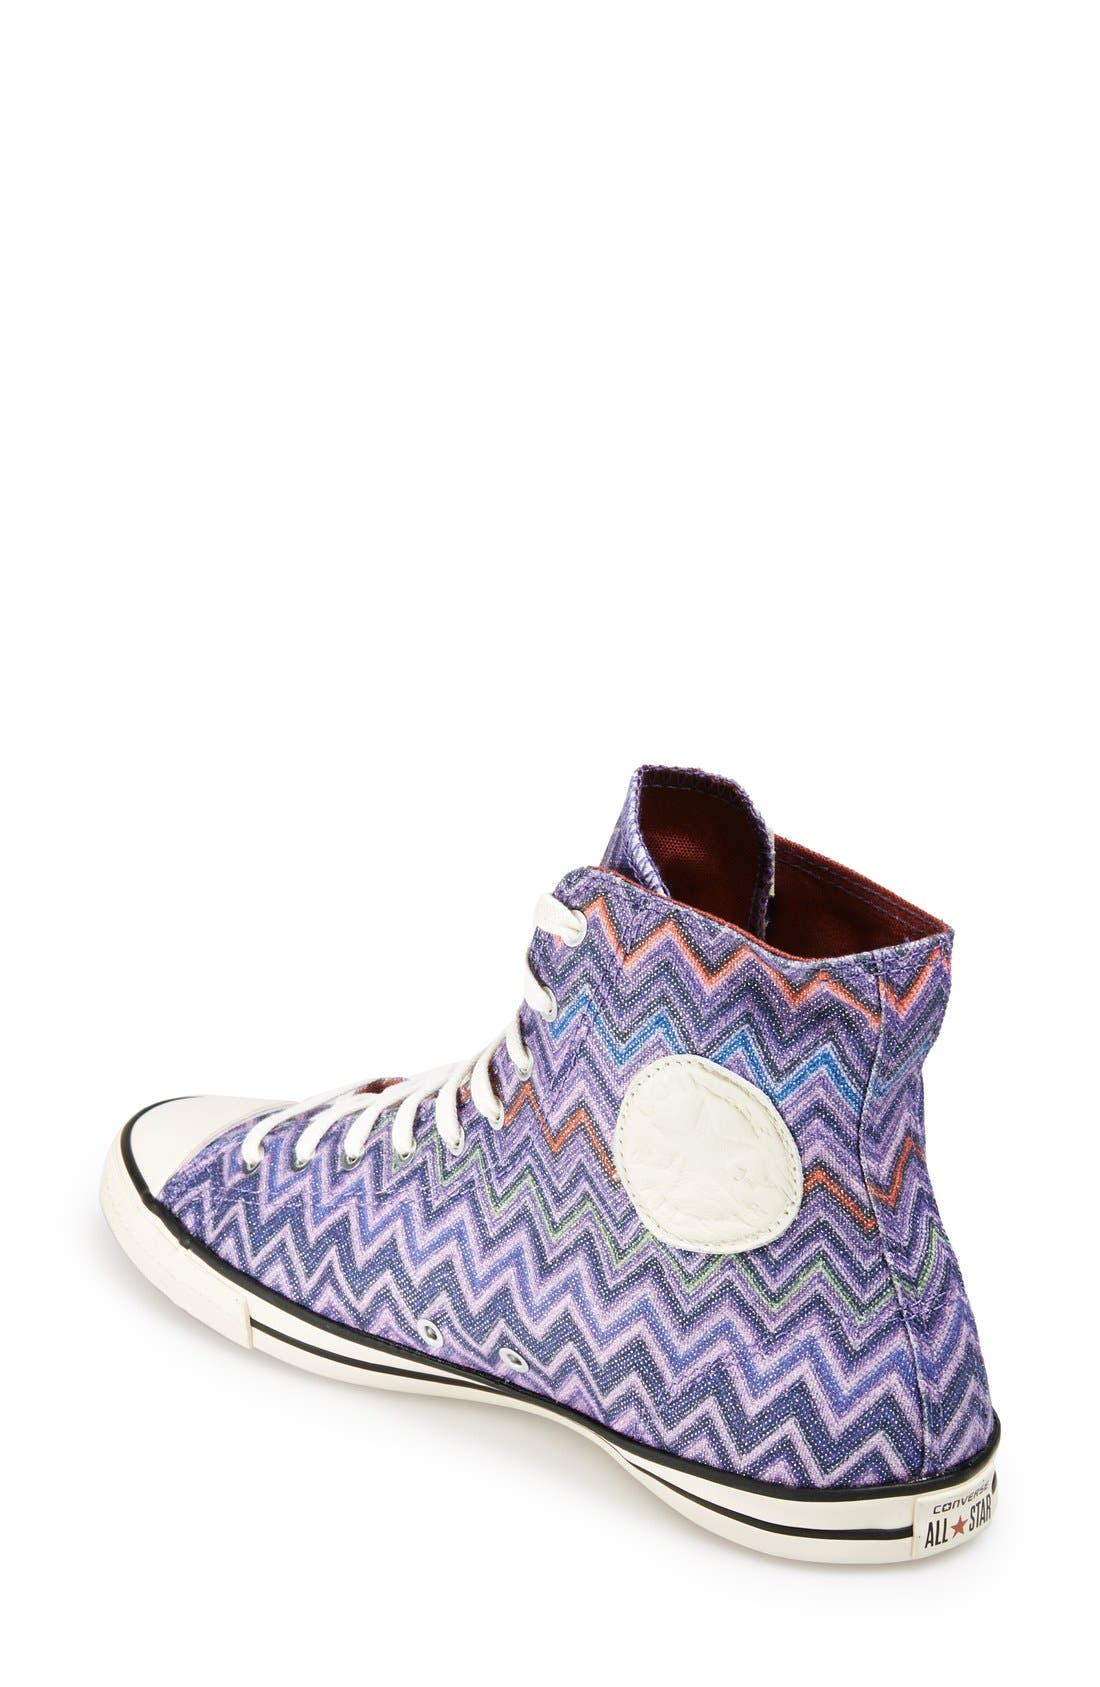 Alternate Image 2  - Converse x Missoni Chuck Taylor® All Star® High Top Sneaker (Women)